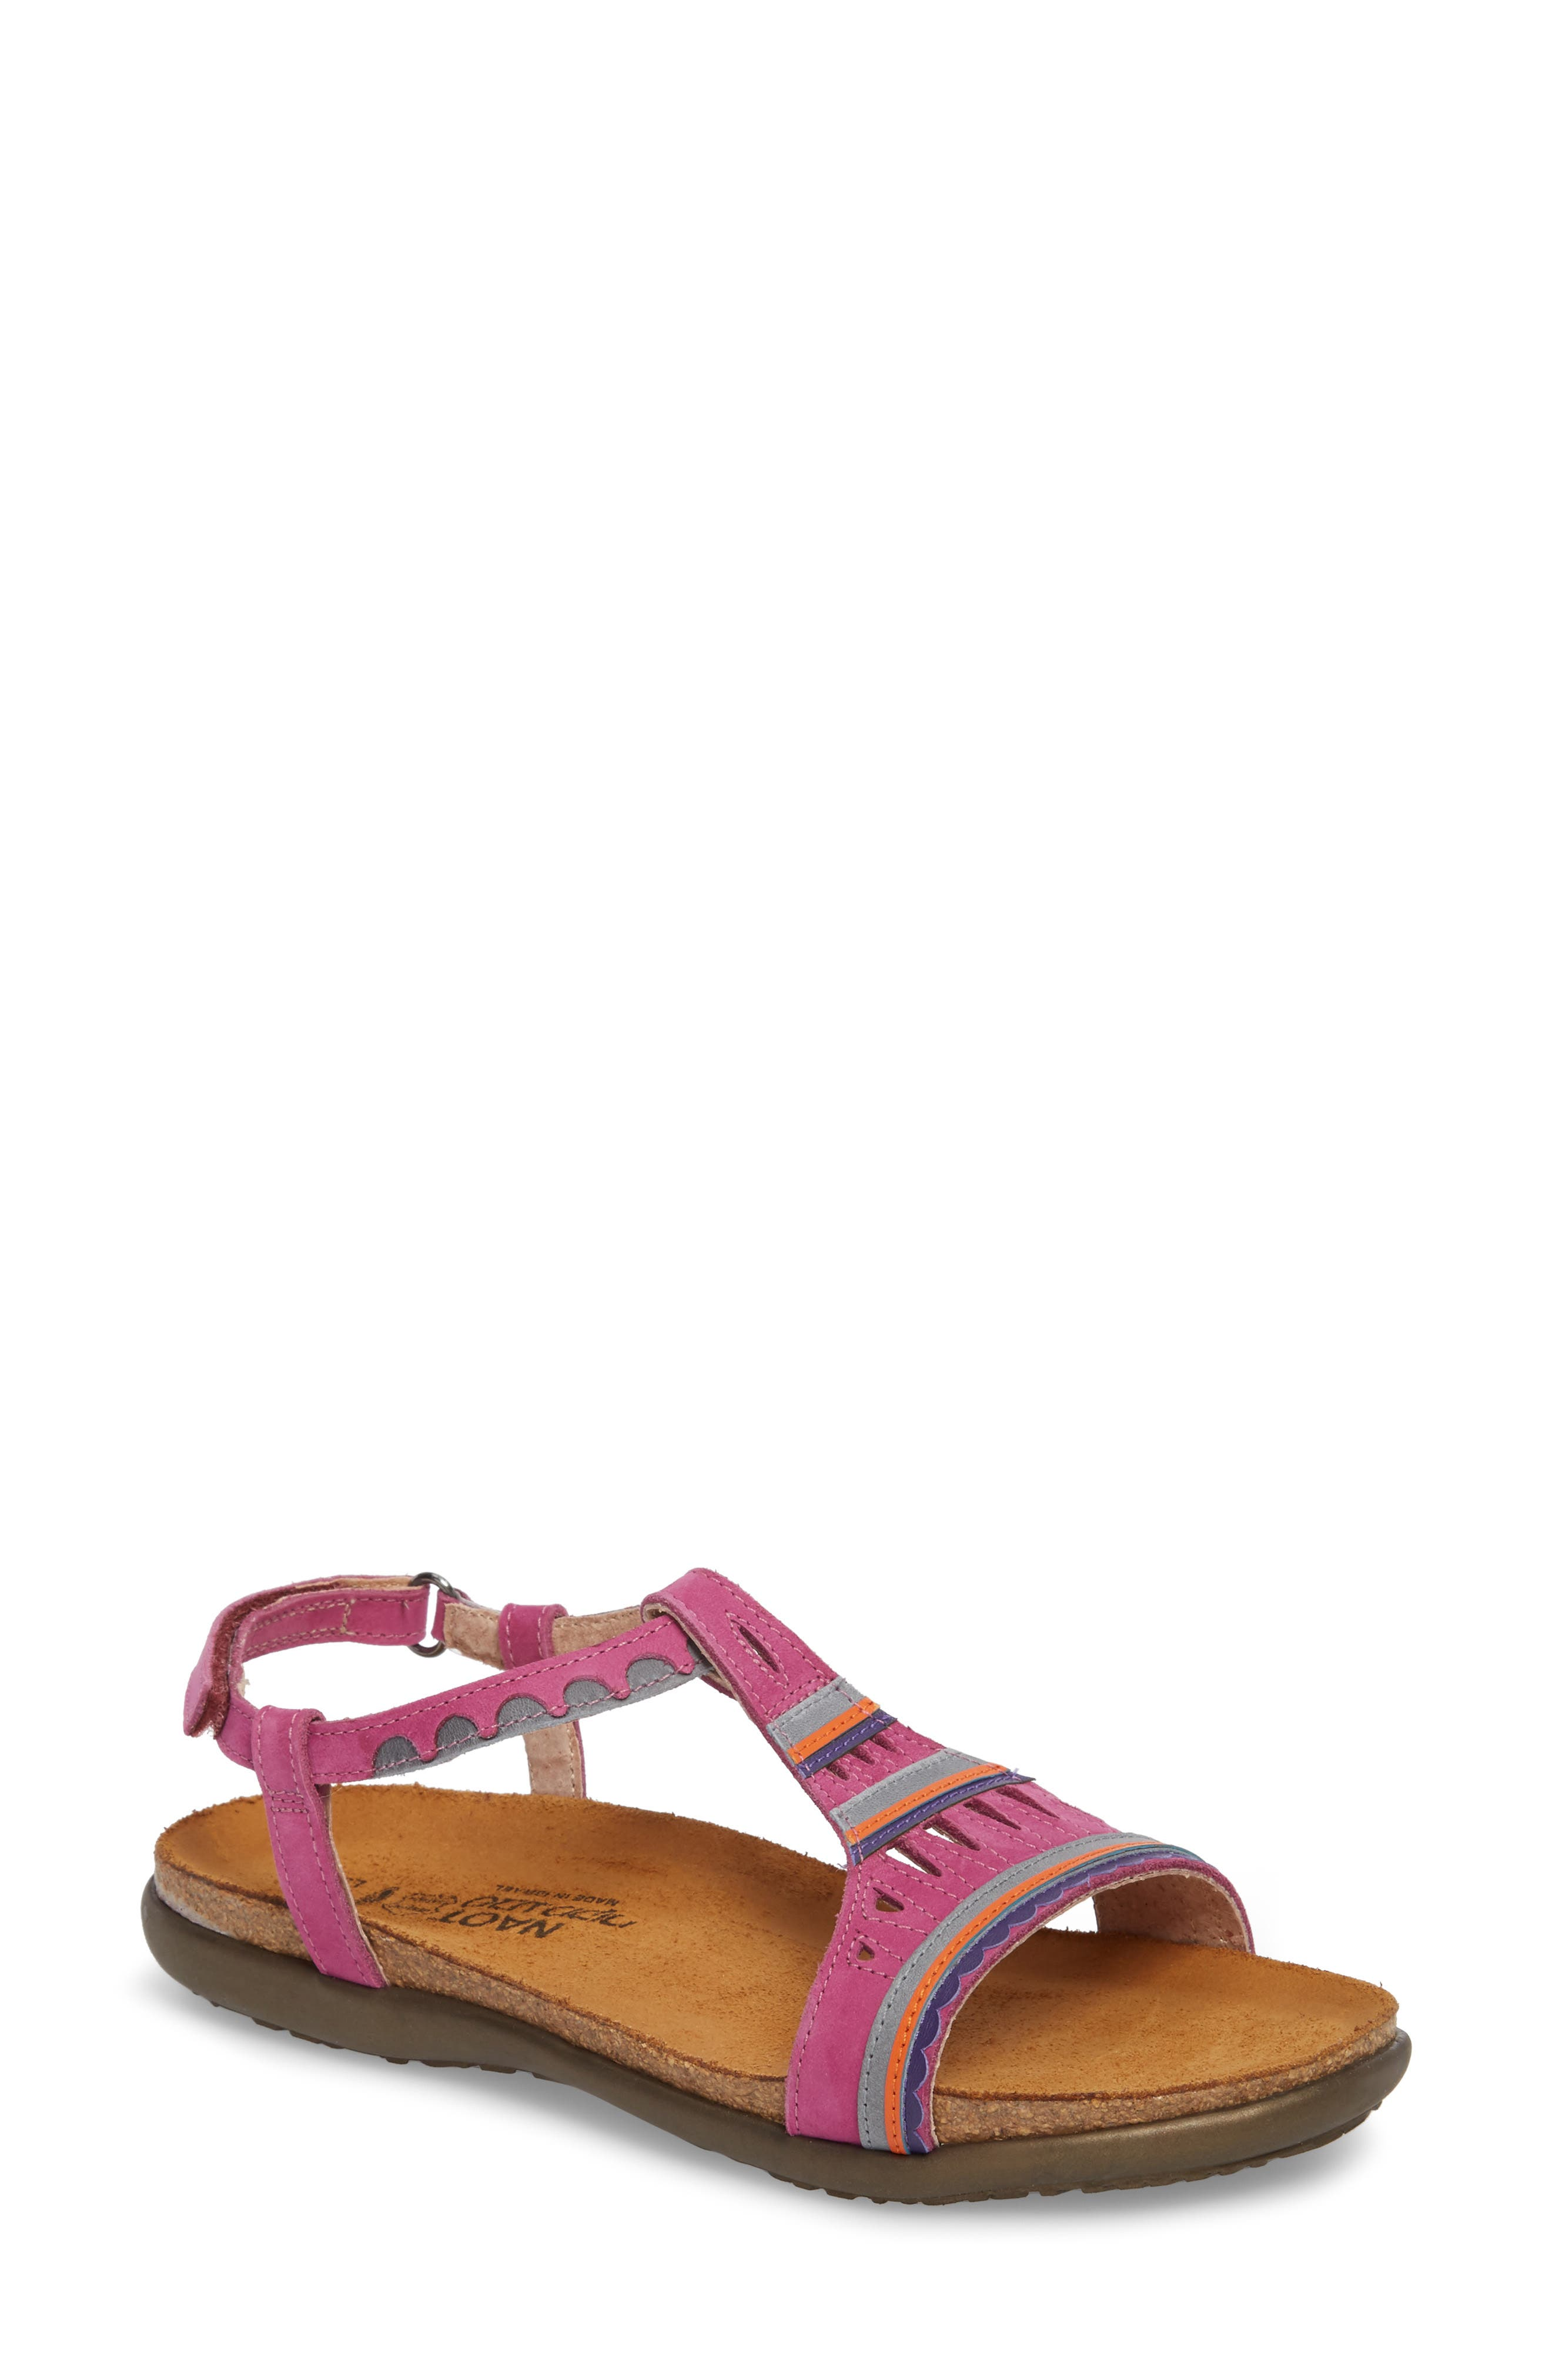 Main Image - Naot Odelia Perforated T-Strap Sandal (Women)